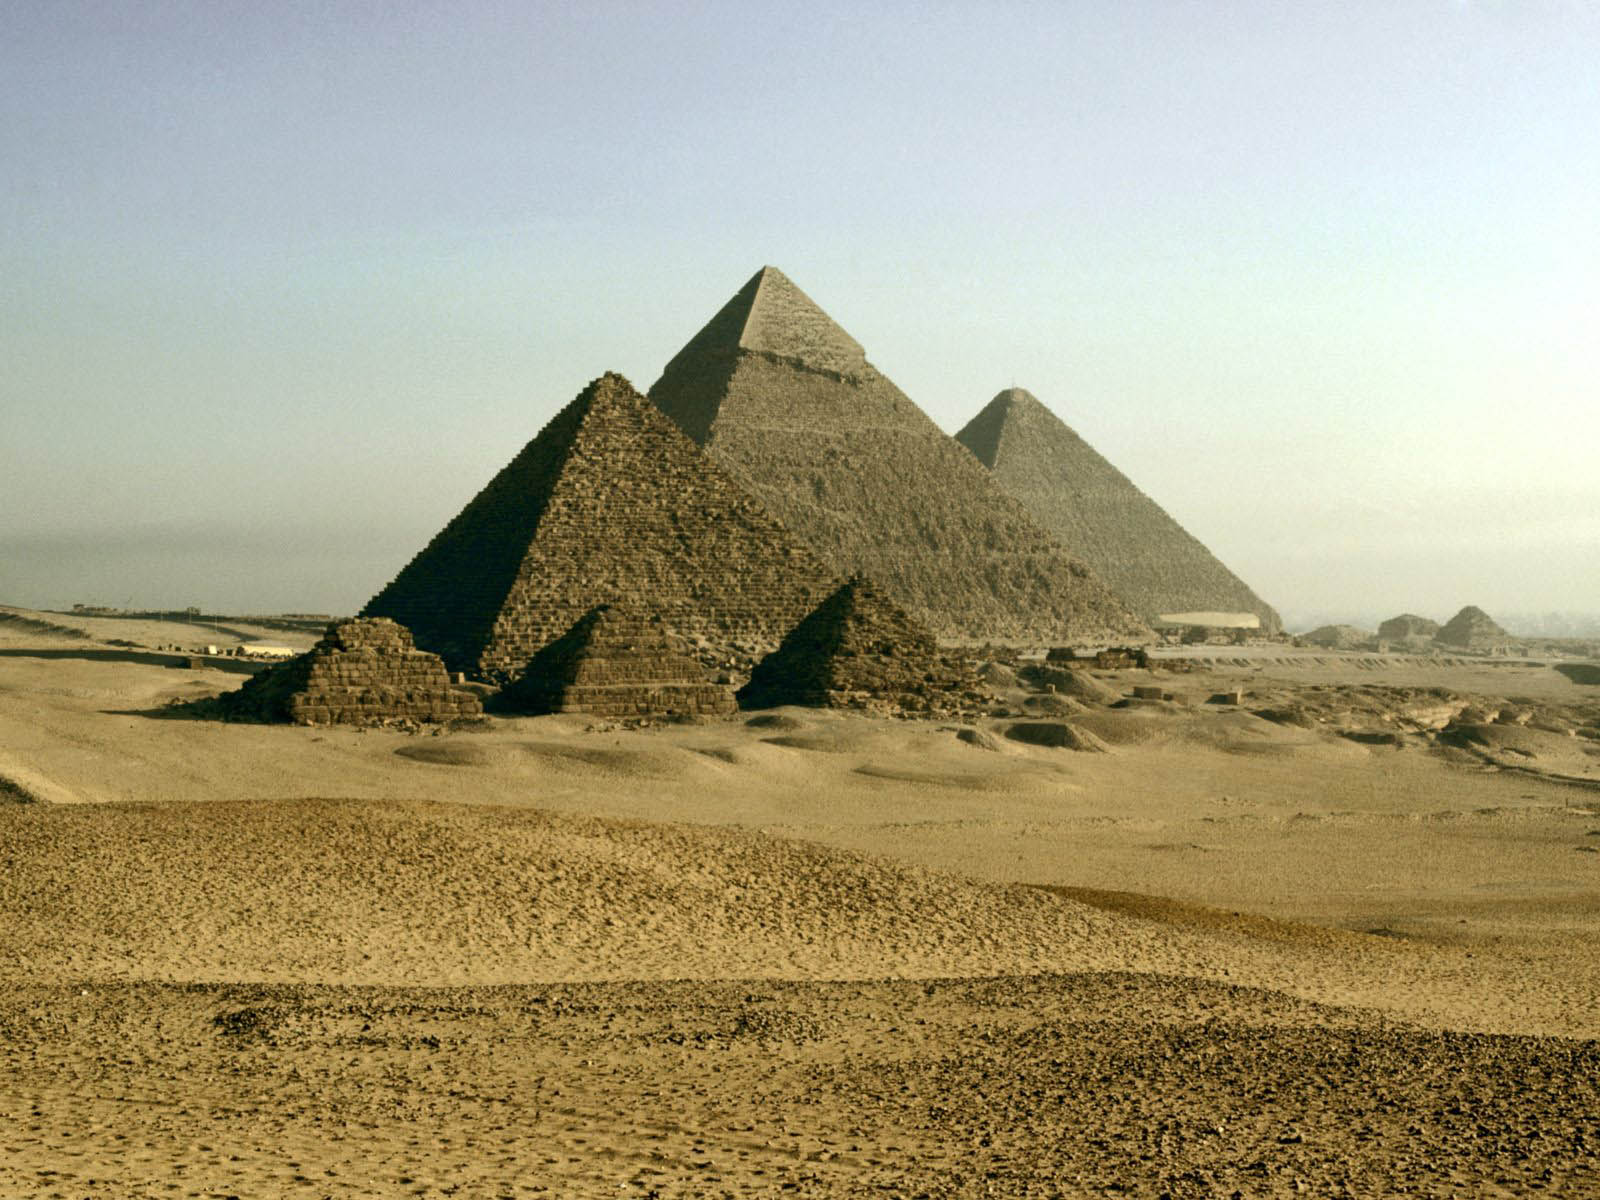 egyptian pyramids In ancient egypt, pyramids were built during the time of the old kingdom pyramids were tombs, royal tombs, where the ancient egyptians buried their kings.